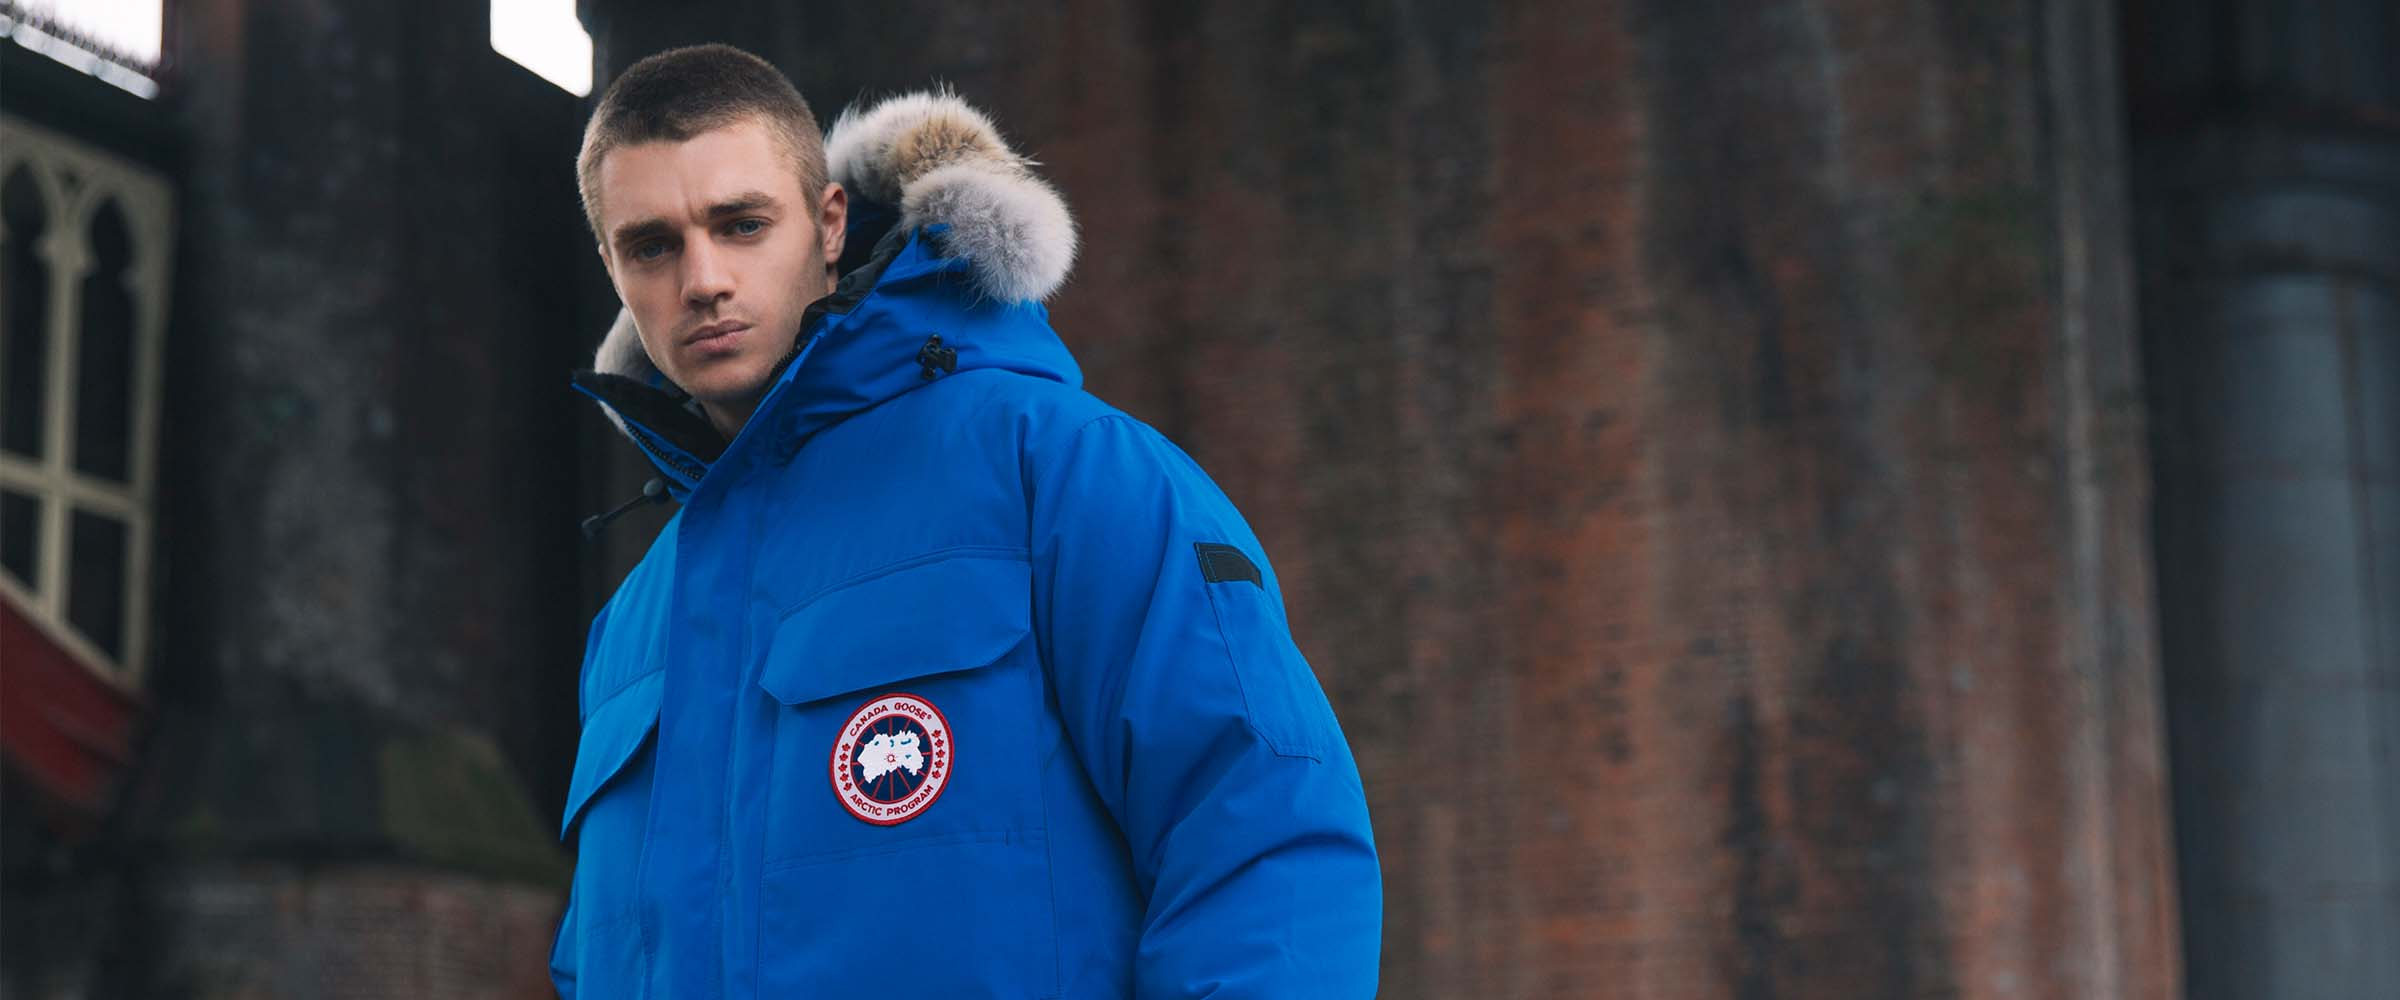 The Perfect: Down Jacket